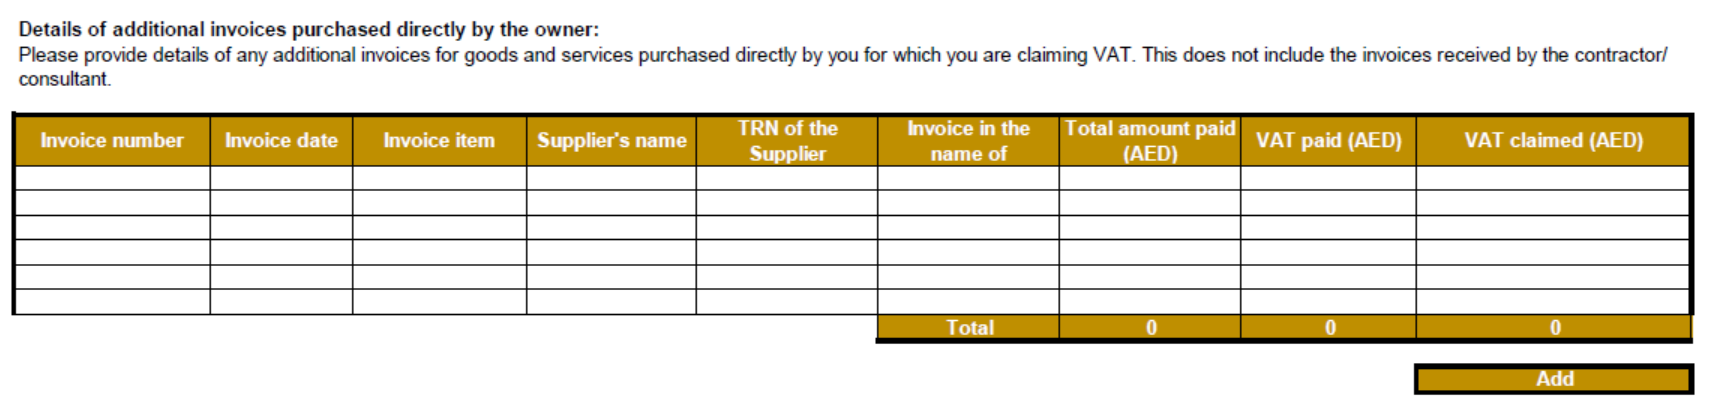 vat refund form 6.png